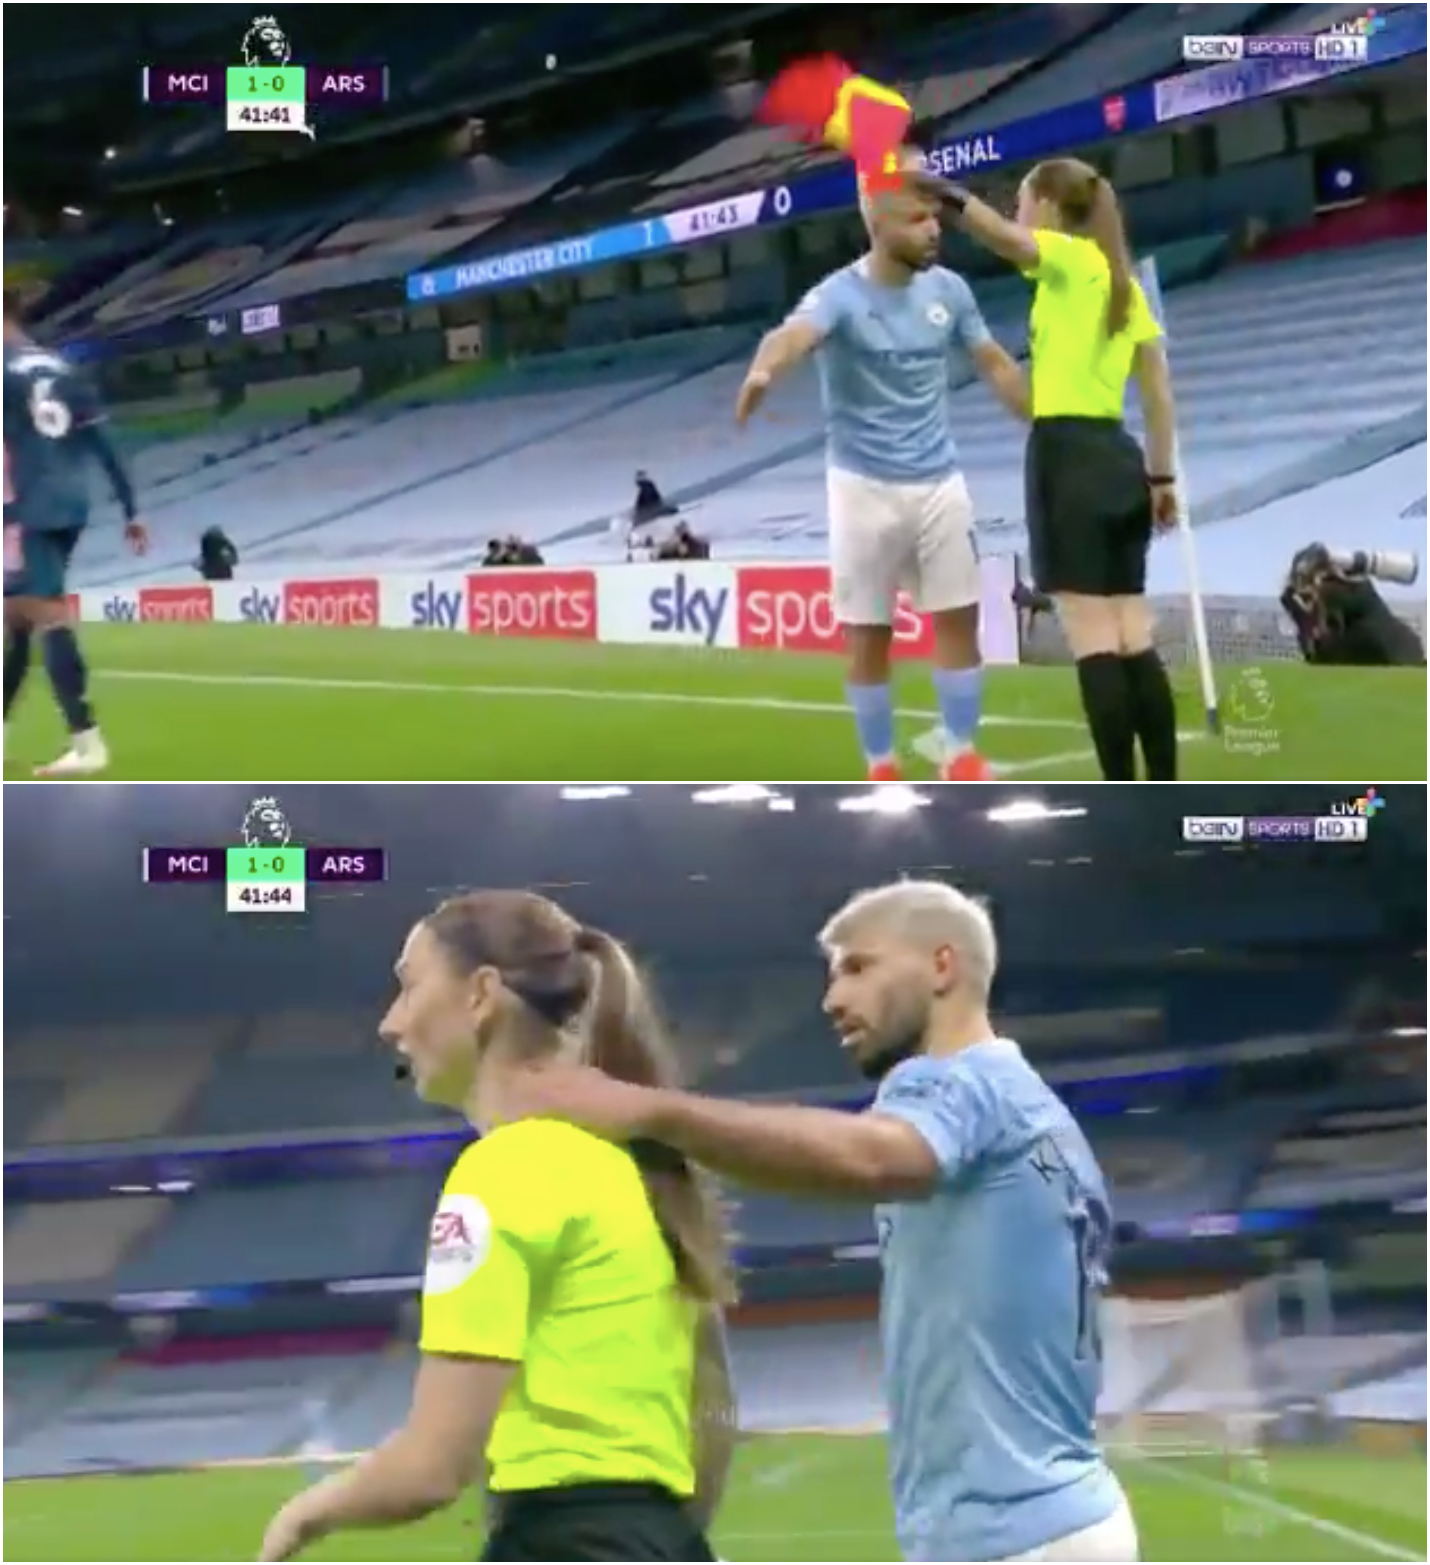 Man City boss Guardiola defends Aguero amid outcry over touching lineswoman